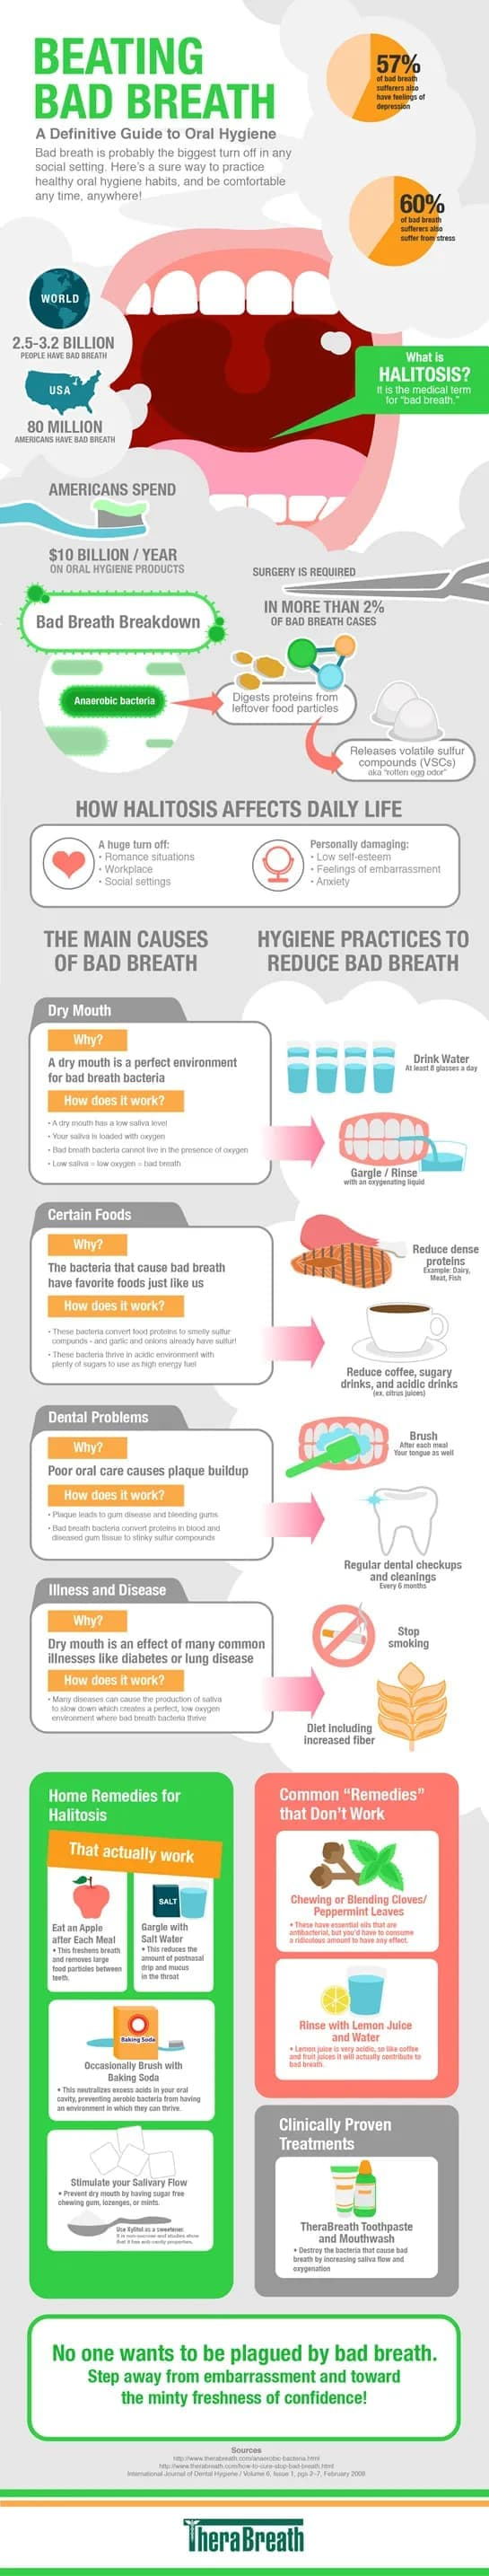 Clear up Bad Breath (Halitosis) Beating Bad Breath Guide Infographic